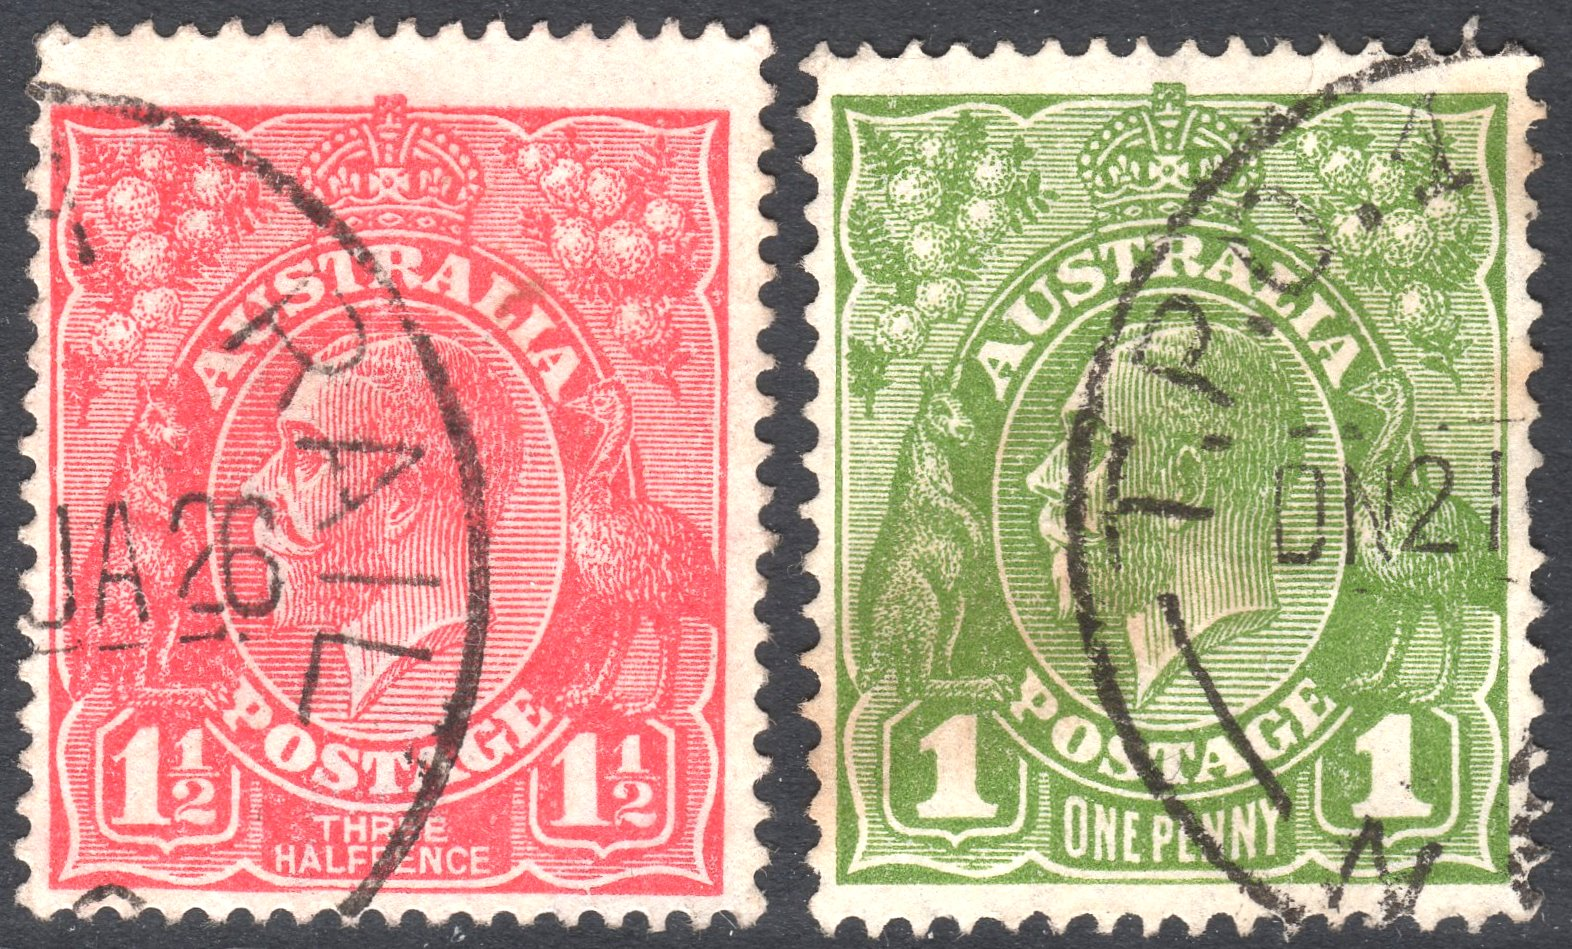 red cancelled a jakubek penny of and mauritius bothpost present two post stamp office stamps the rare past with set brown